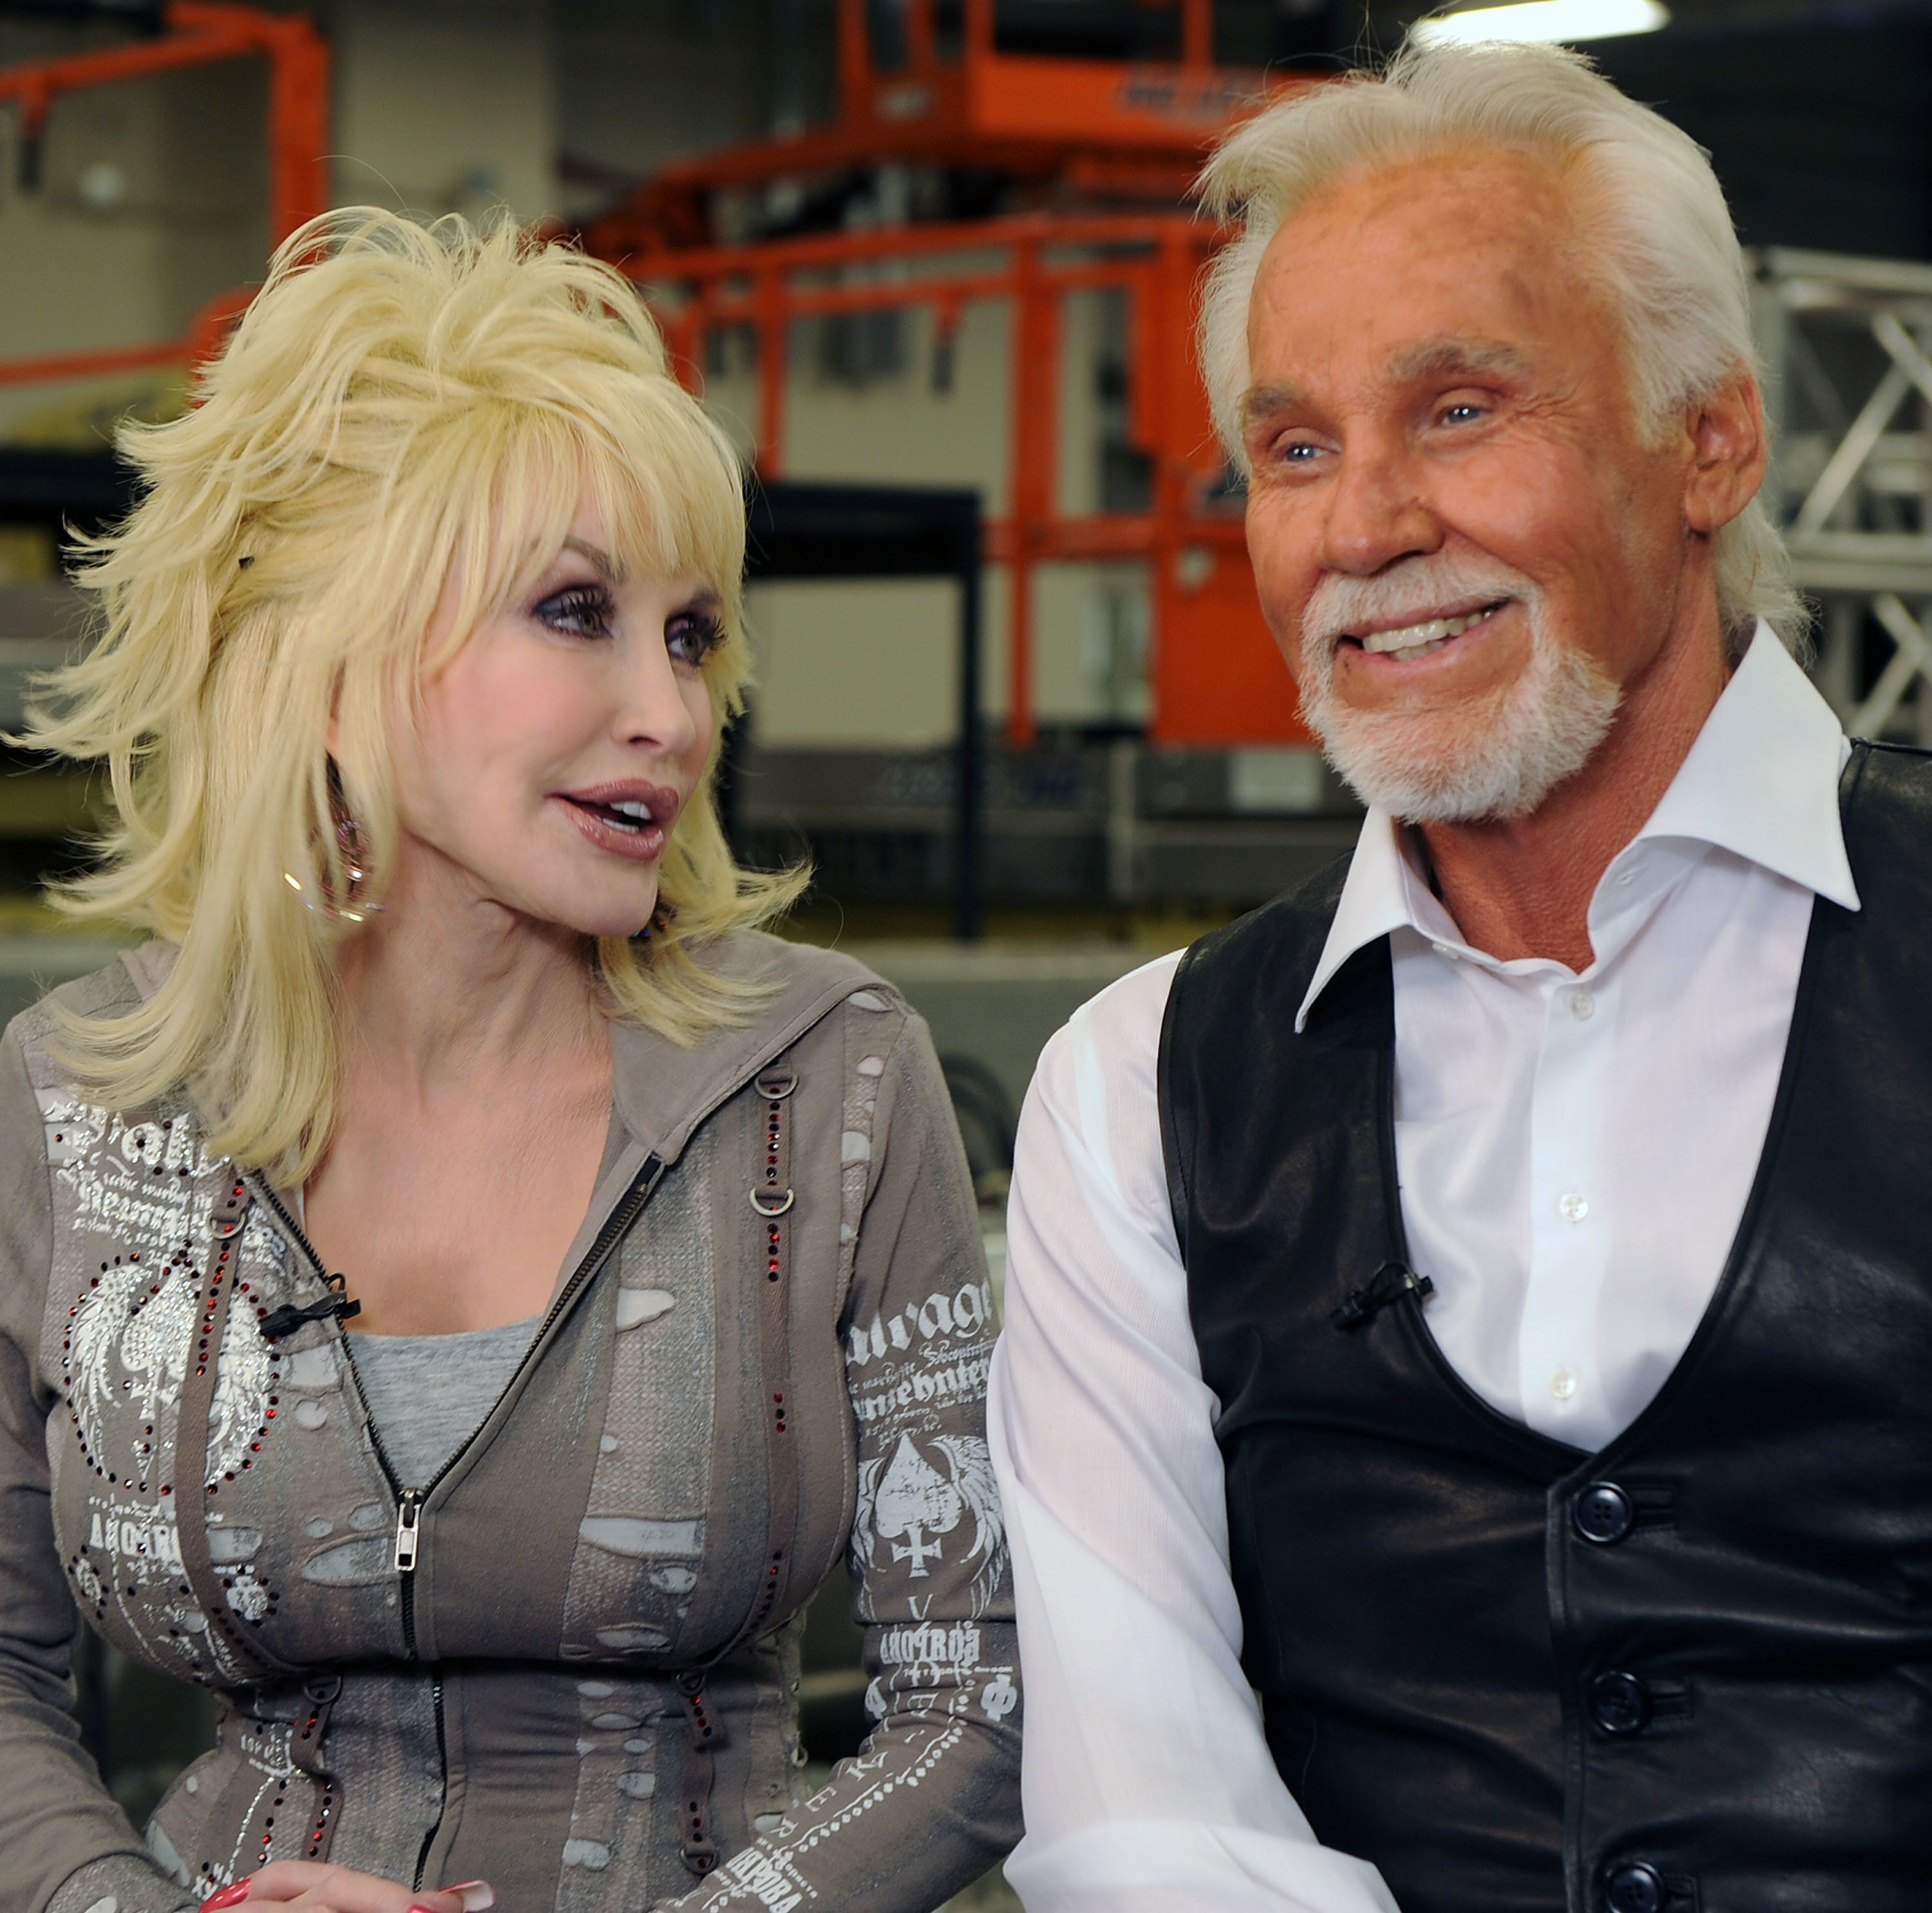 LEDYARD CENTER, CT - APRIL 10:  ***EXCLUSIVE COVERAGE***   Singers/Songwriters Dolly Parton and Honoree Kenny Rogers Backstage at the Kenny Rogers: The First 50 Years  show at the MGM Grand at Foxwoods on April 10, 2010 in Ledyard Center, Connecticut. (Photo by Rick Diamond/Getty Images)